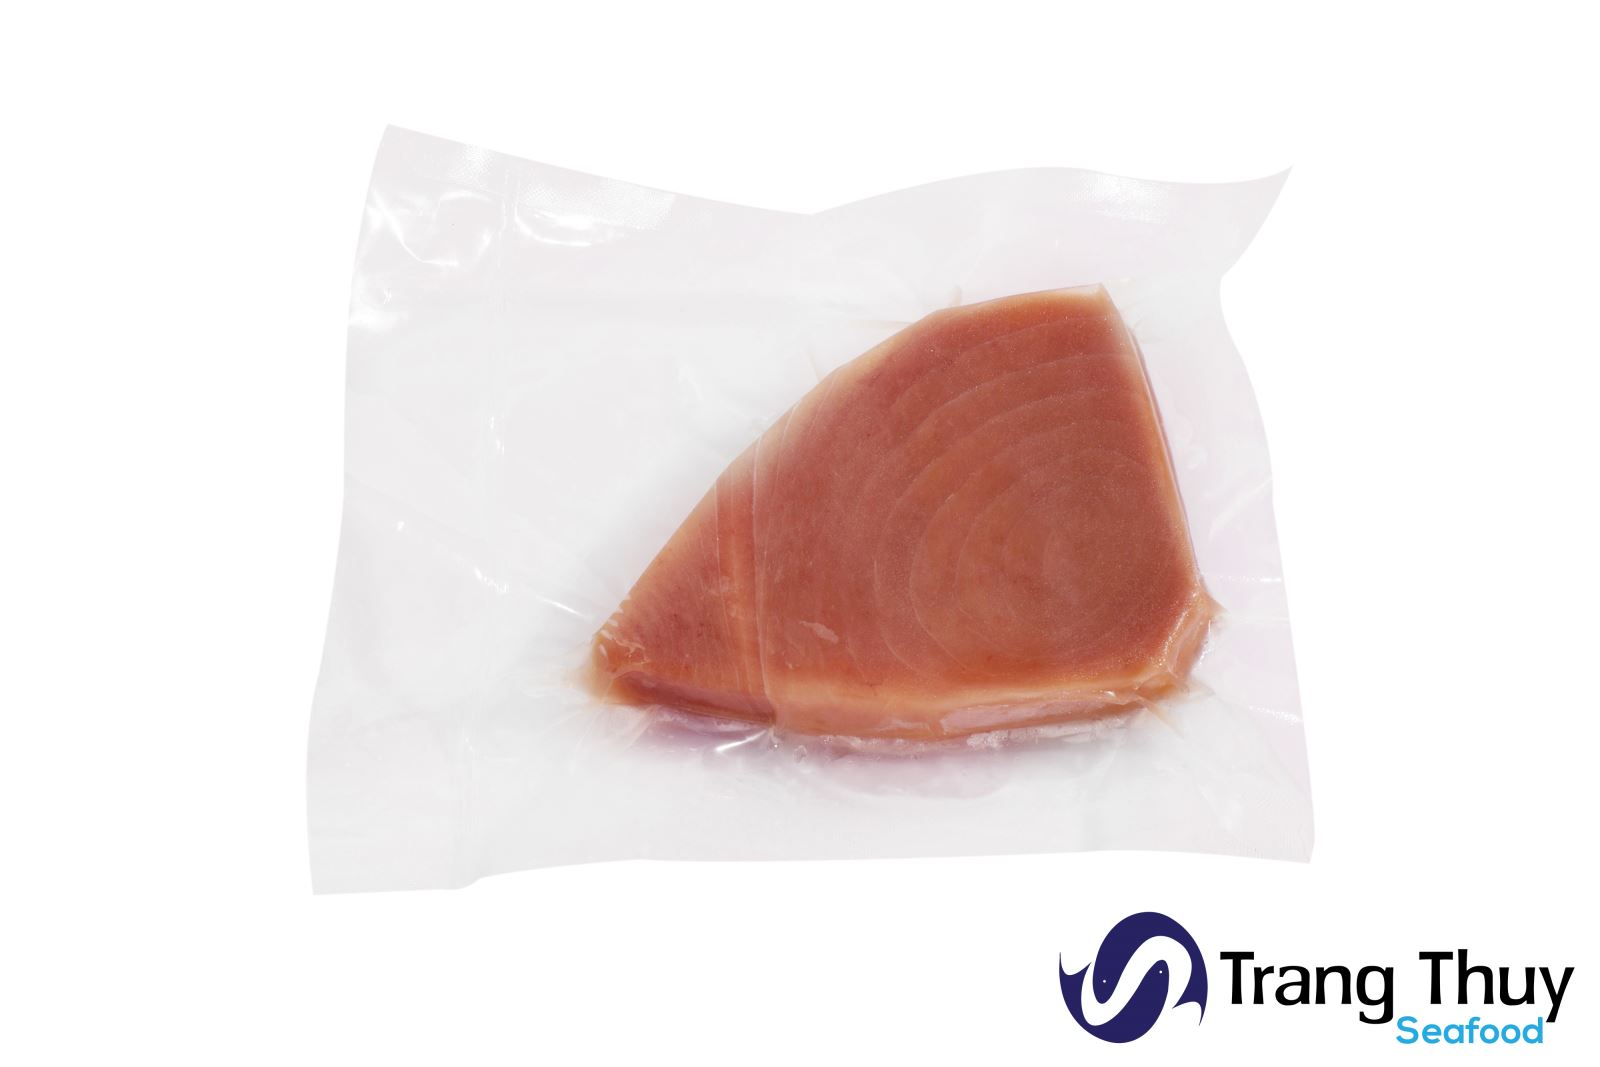 Untreated Frozen Yellowfin Tuna Steak Produced By Trang Thuy Seafood